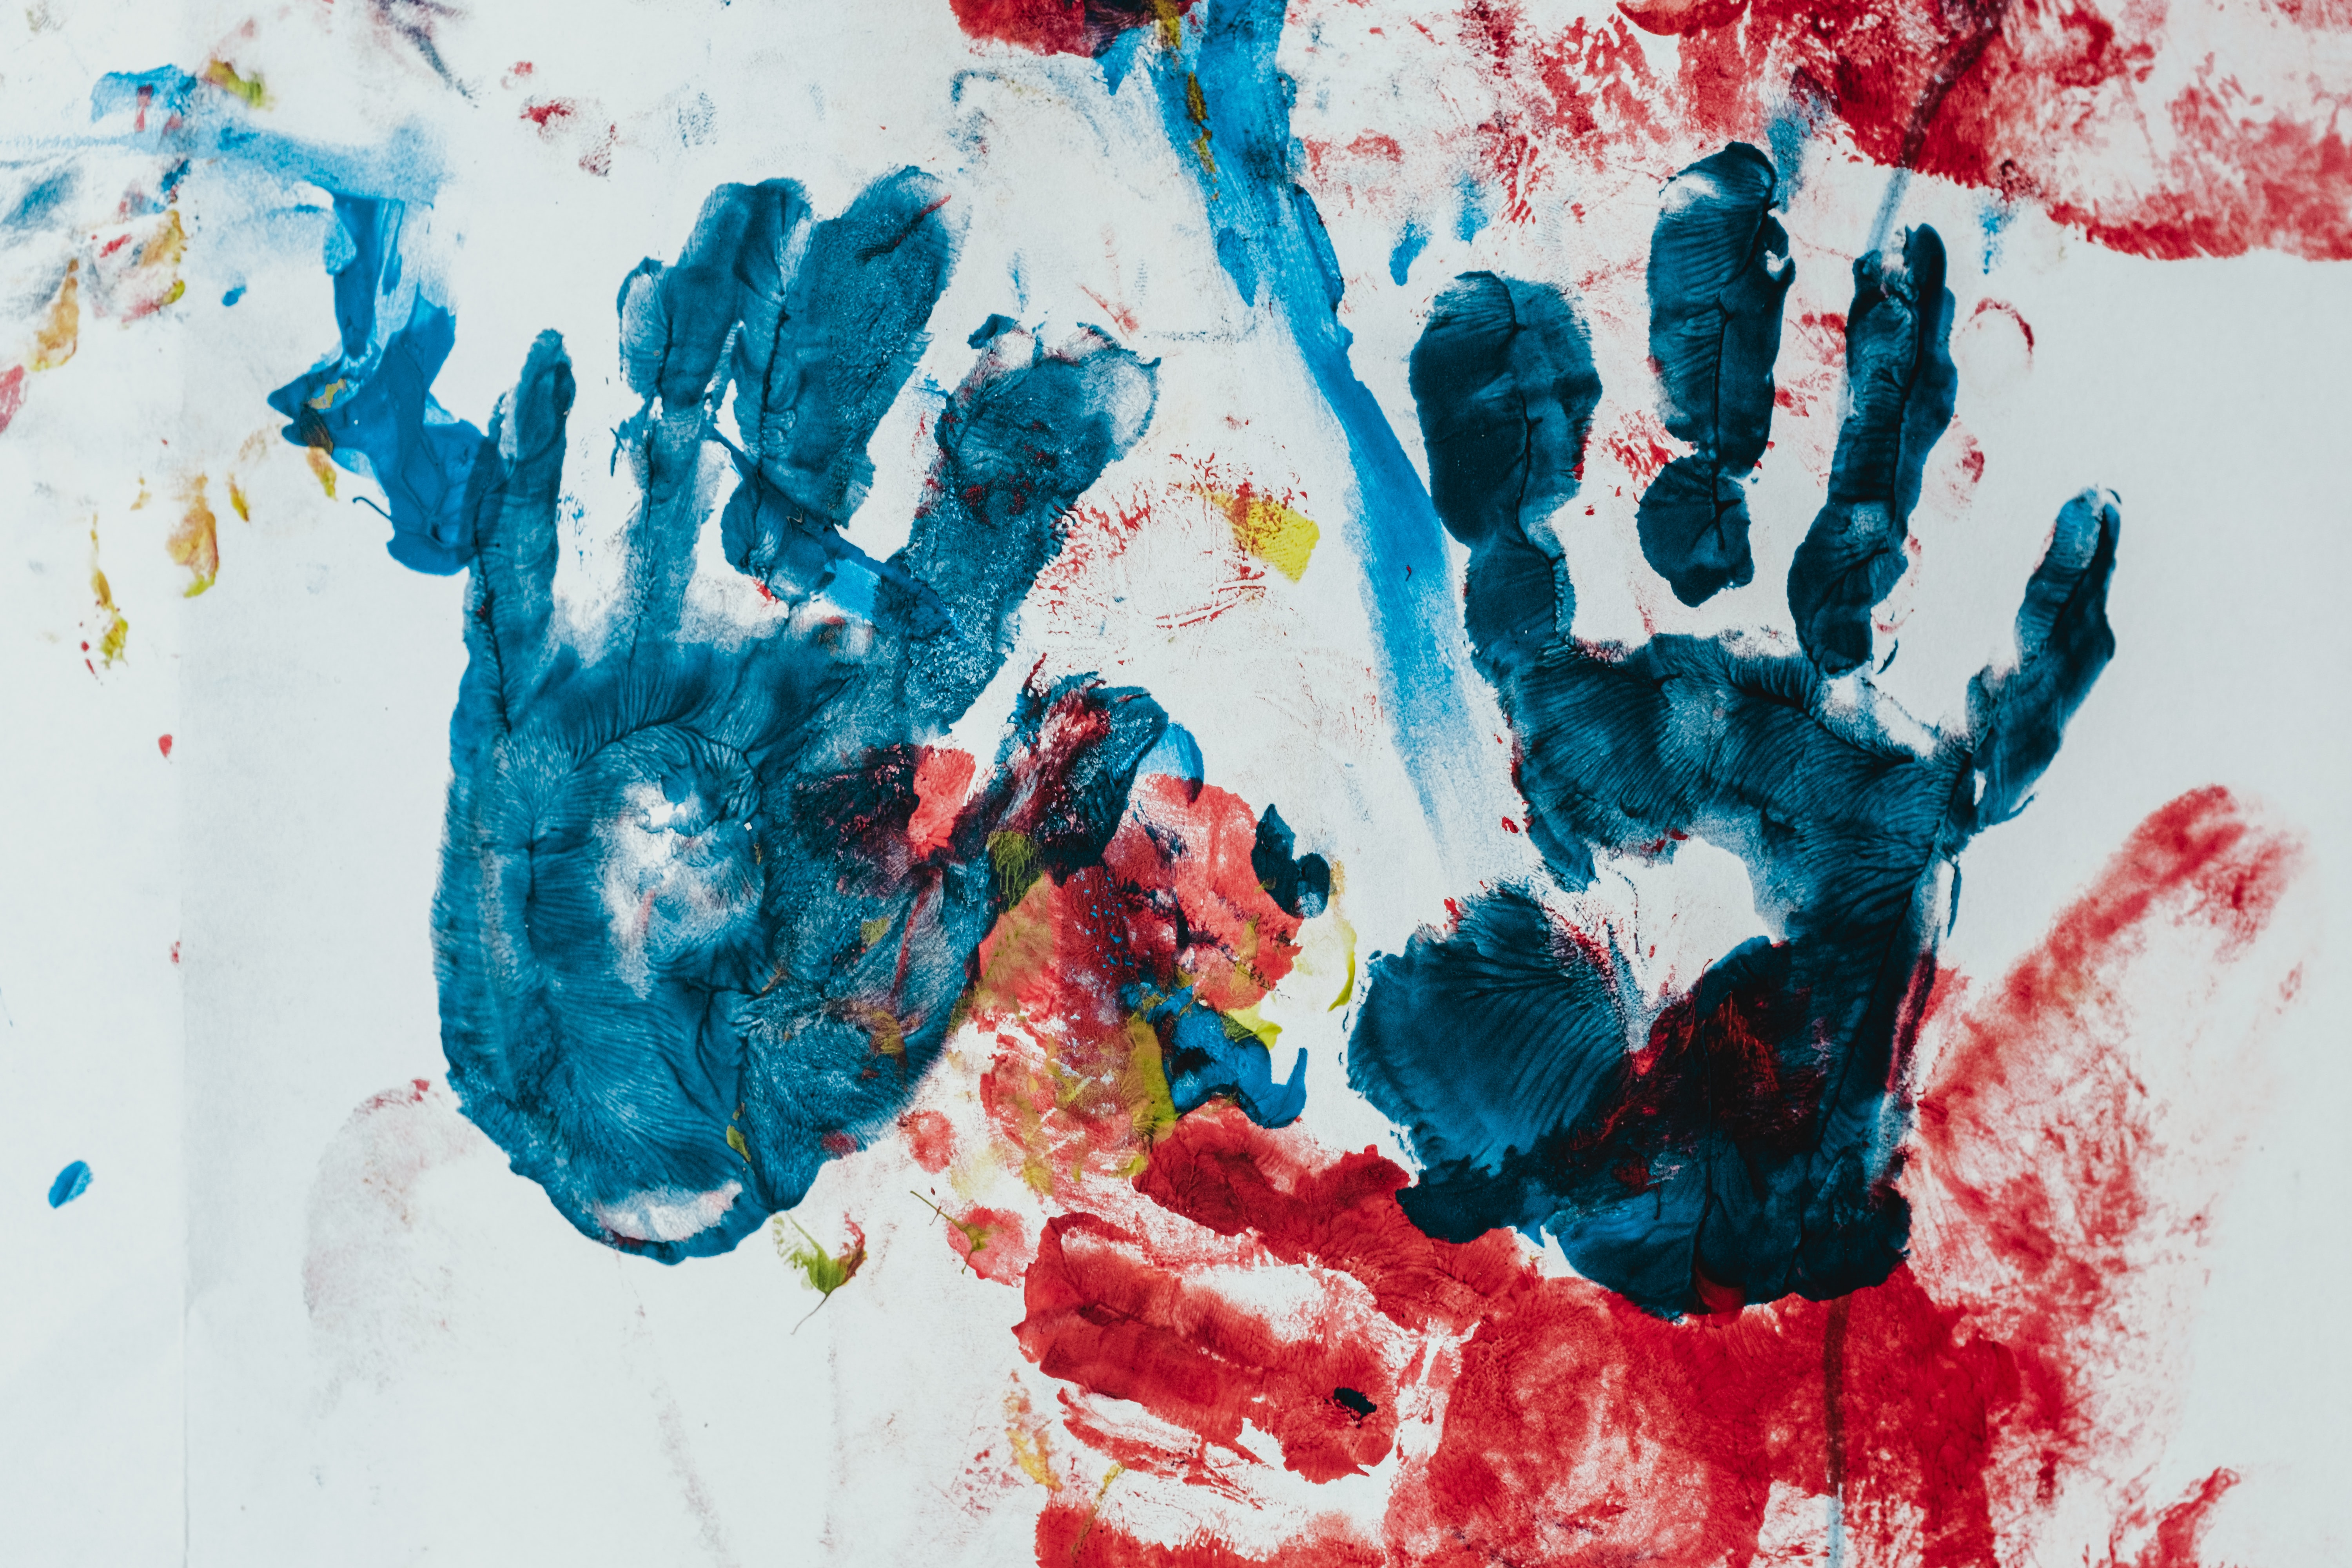 handprints made with paint